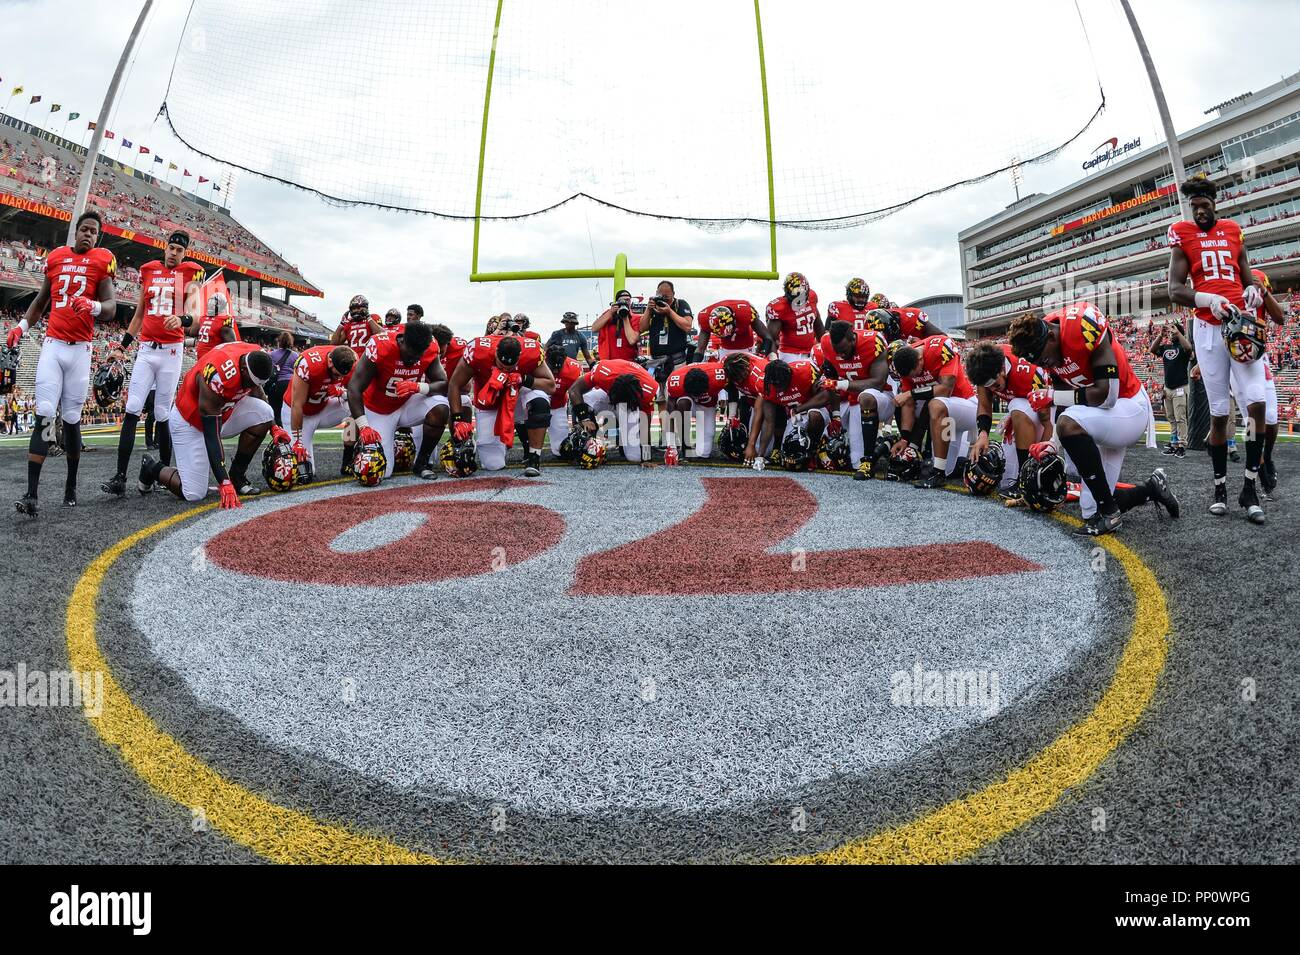 Number 79 Stock Photos Images Alamy Wiring Instructions Capital One College Park Maryland Usa 22nd Sep 2018 Players Kneel In